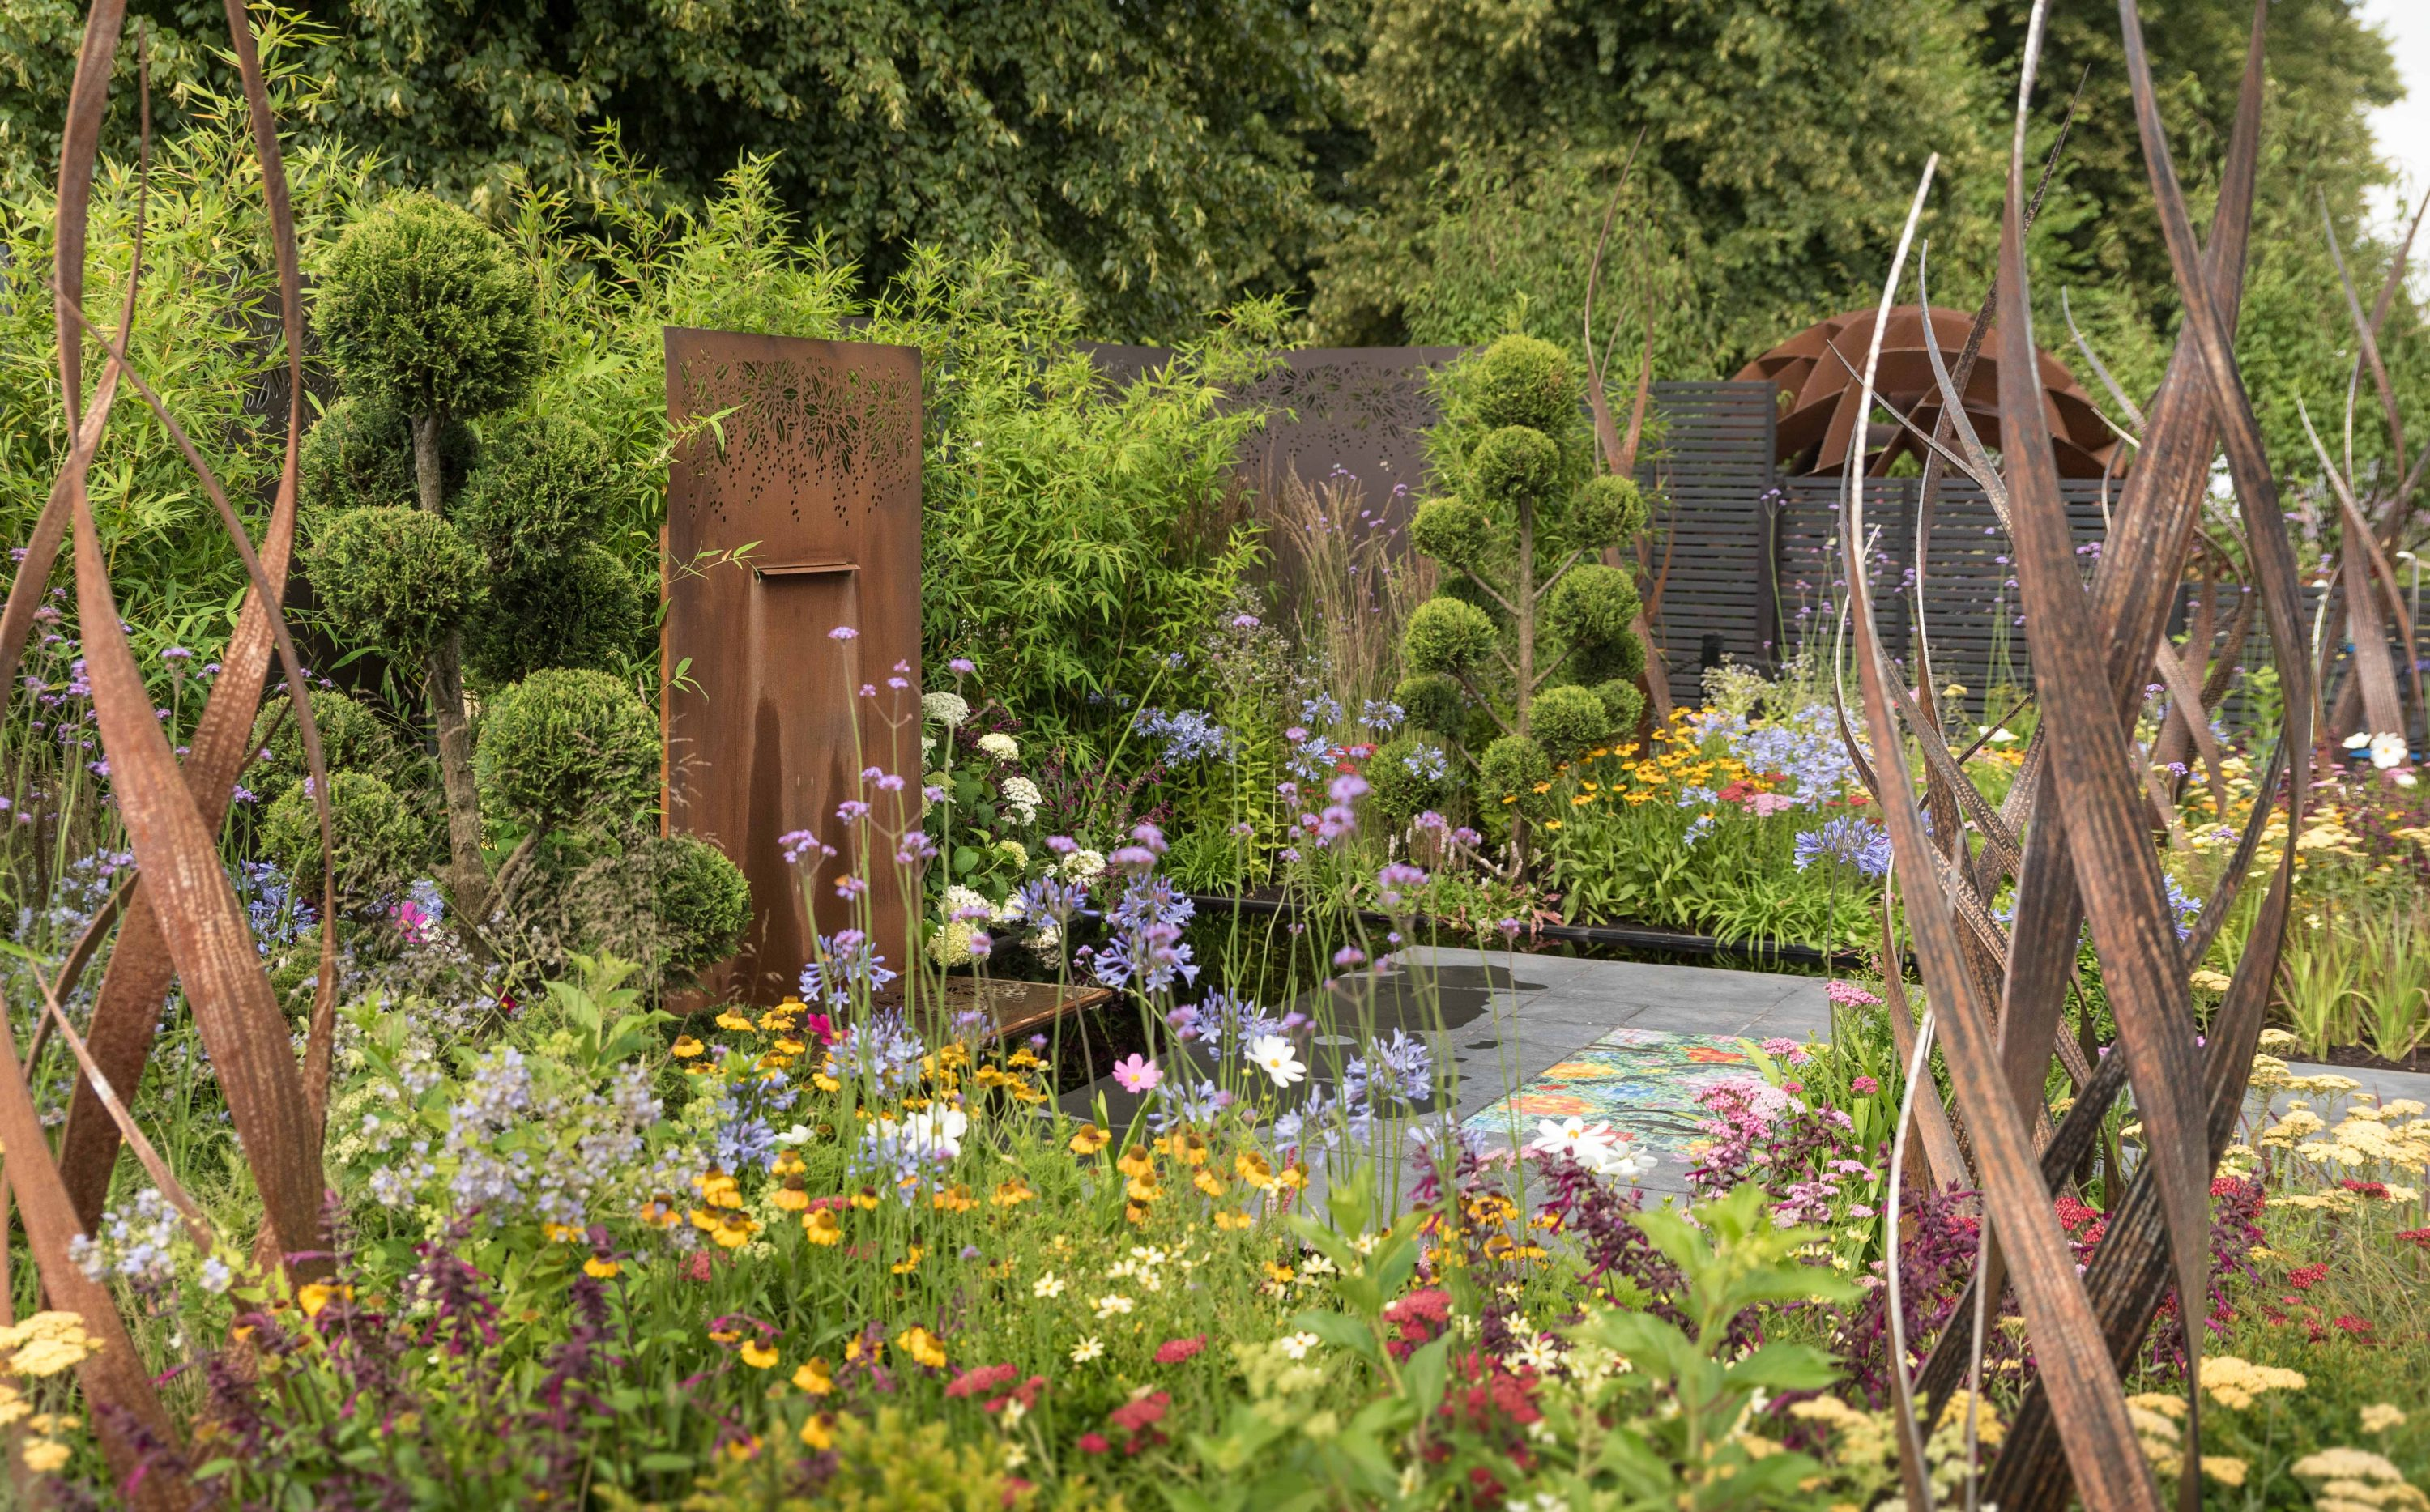 2018 July 4th Hampton Court Palace Flower Show Brilliance in Bloom-13